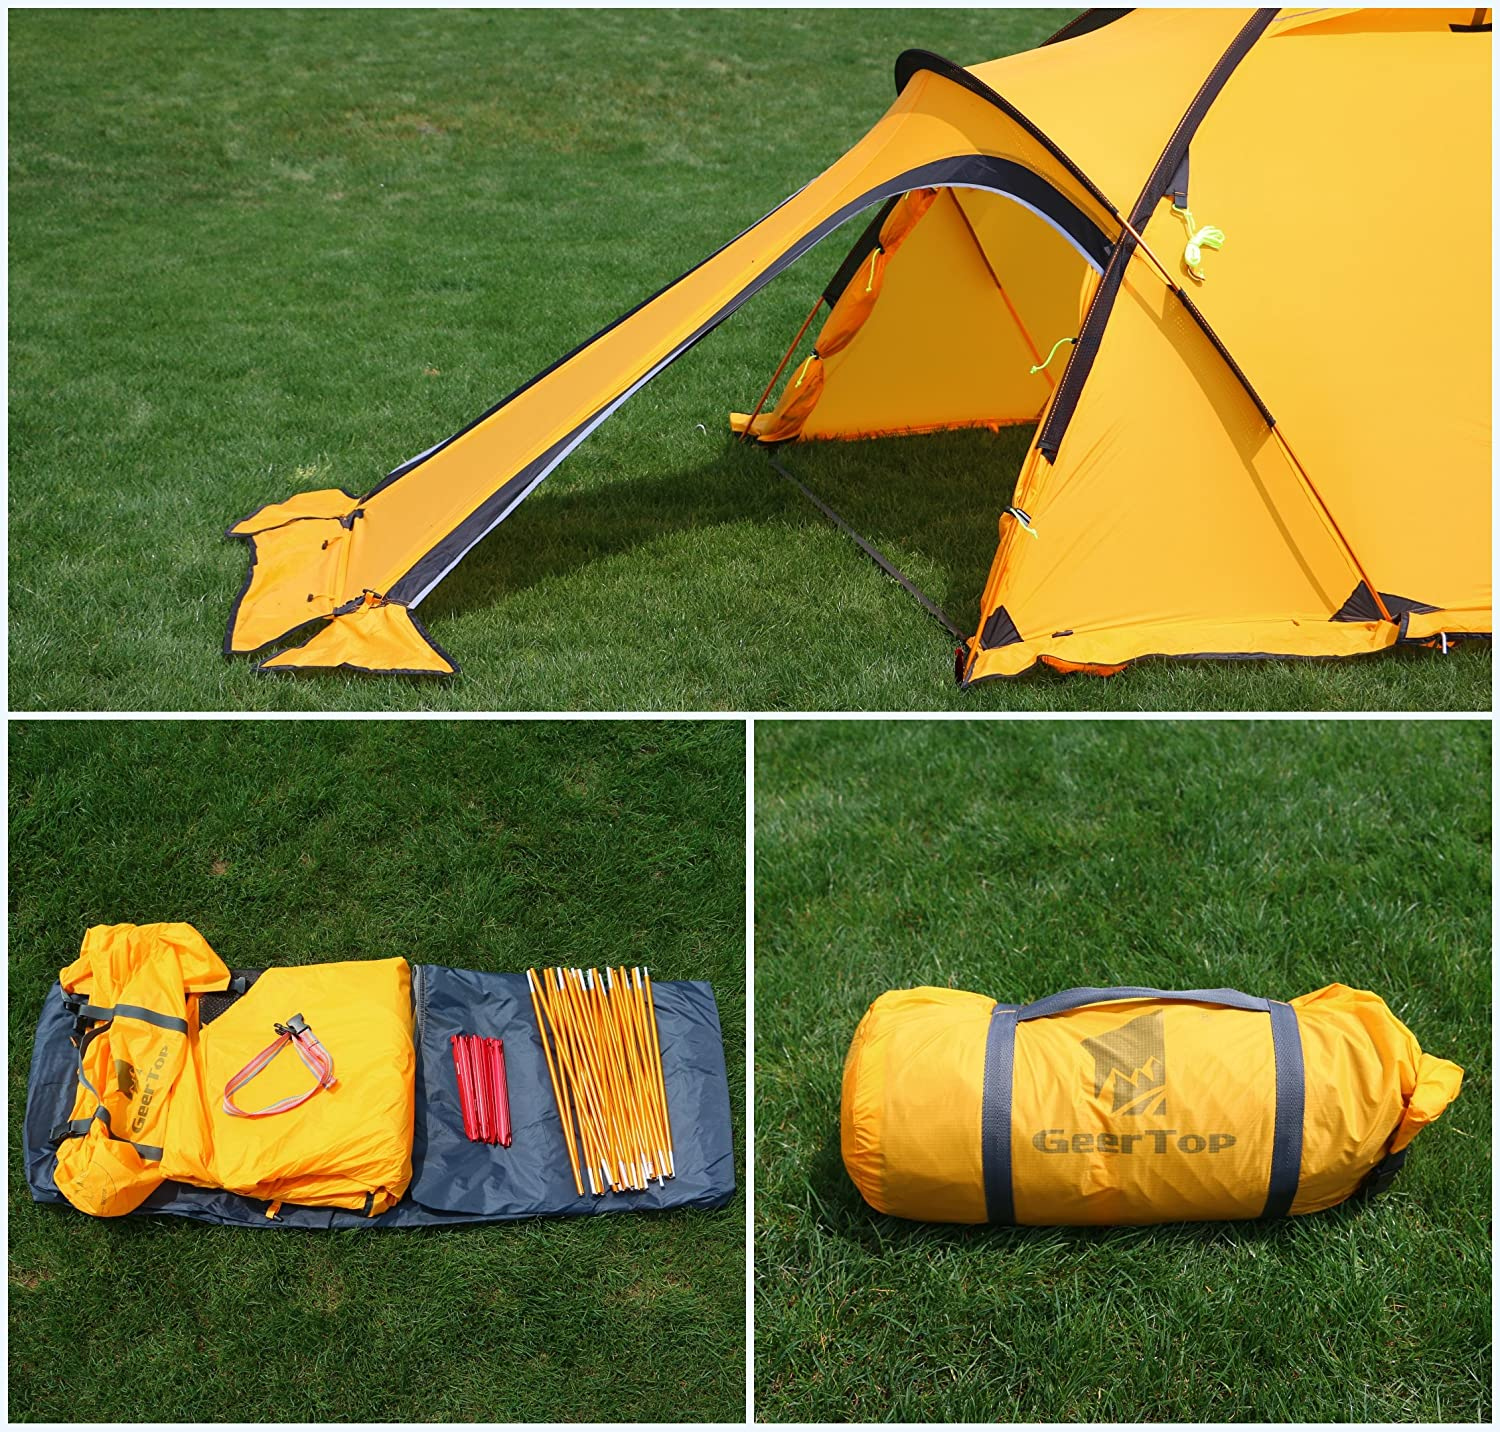 GEERTOP® 4-season 2-person 20D Lightweight Backpacking Alpine Tent For C&ing Hiking Climbing Travel - With A Living Room (Yellow) Amazon.co.uk Sports ...  sc 1 st  Amazon UK & GEERTOP® 4-season 2-person 20D Lightweight Backpacking Alpine Tent ...